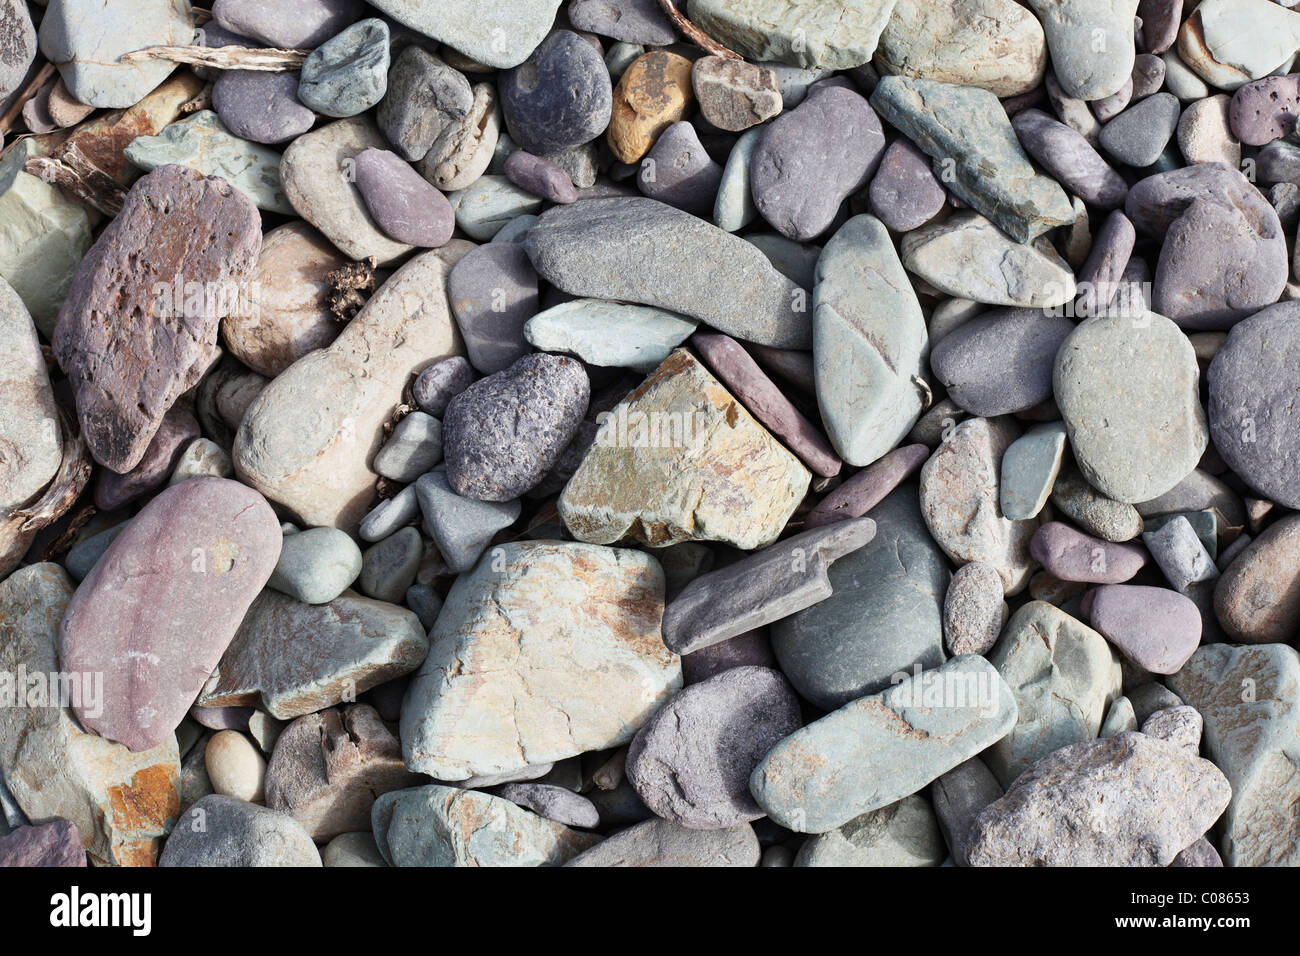 Pebbles on the beach, Dingle Peninsula, County Kerry, Ireland, British Isles, Europe Stock Photo